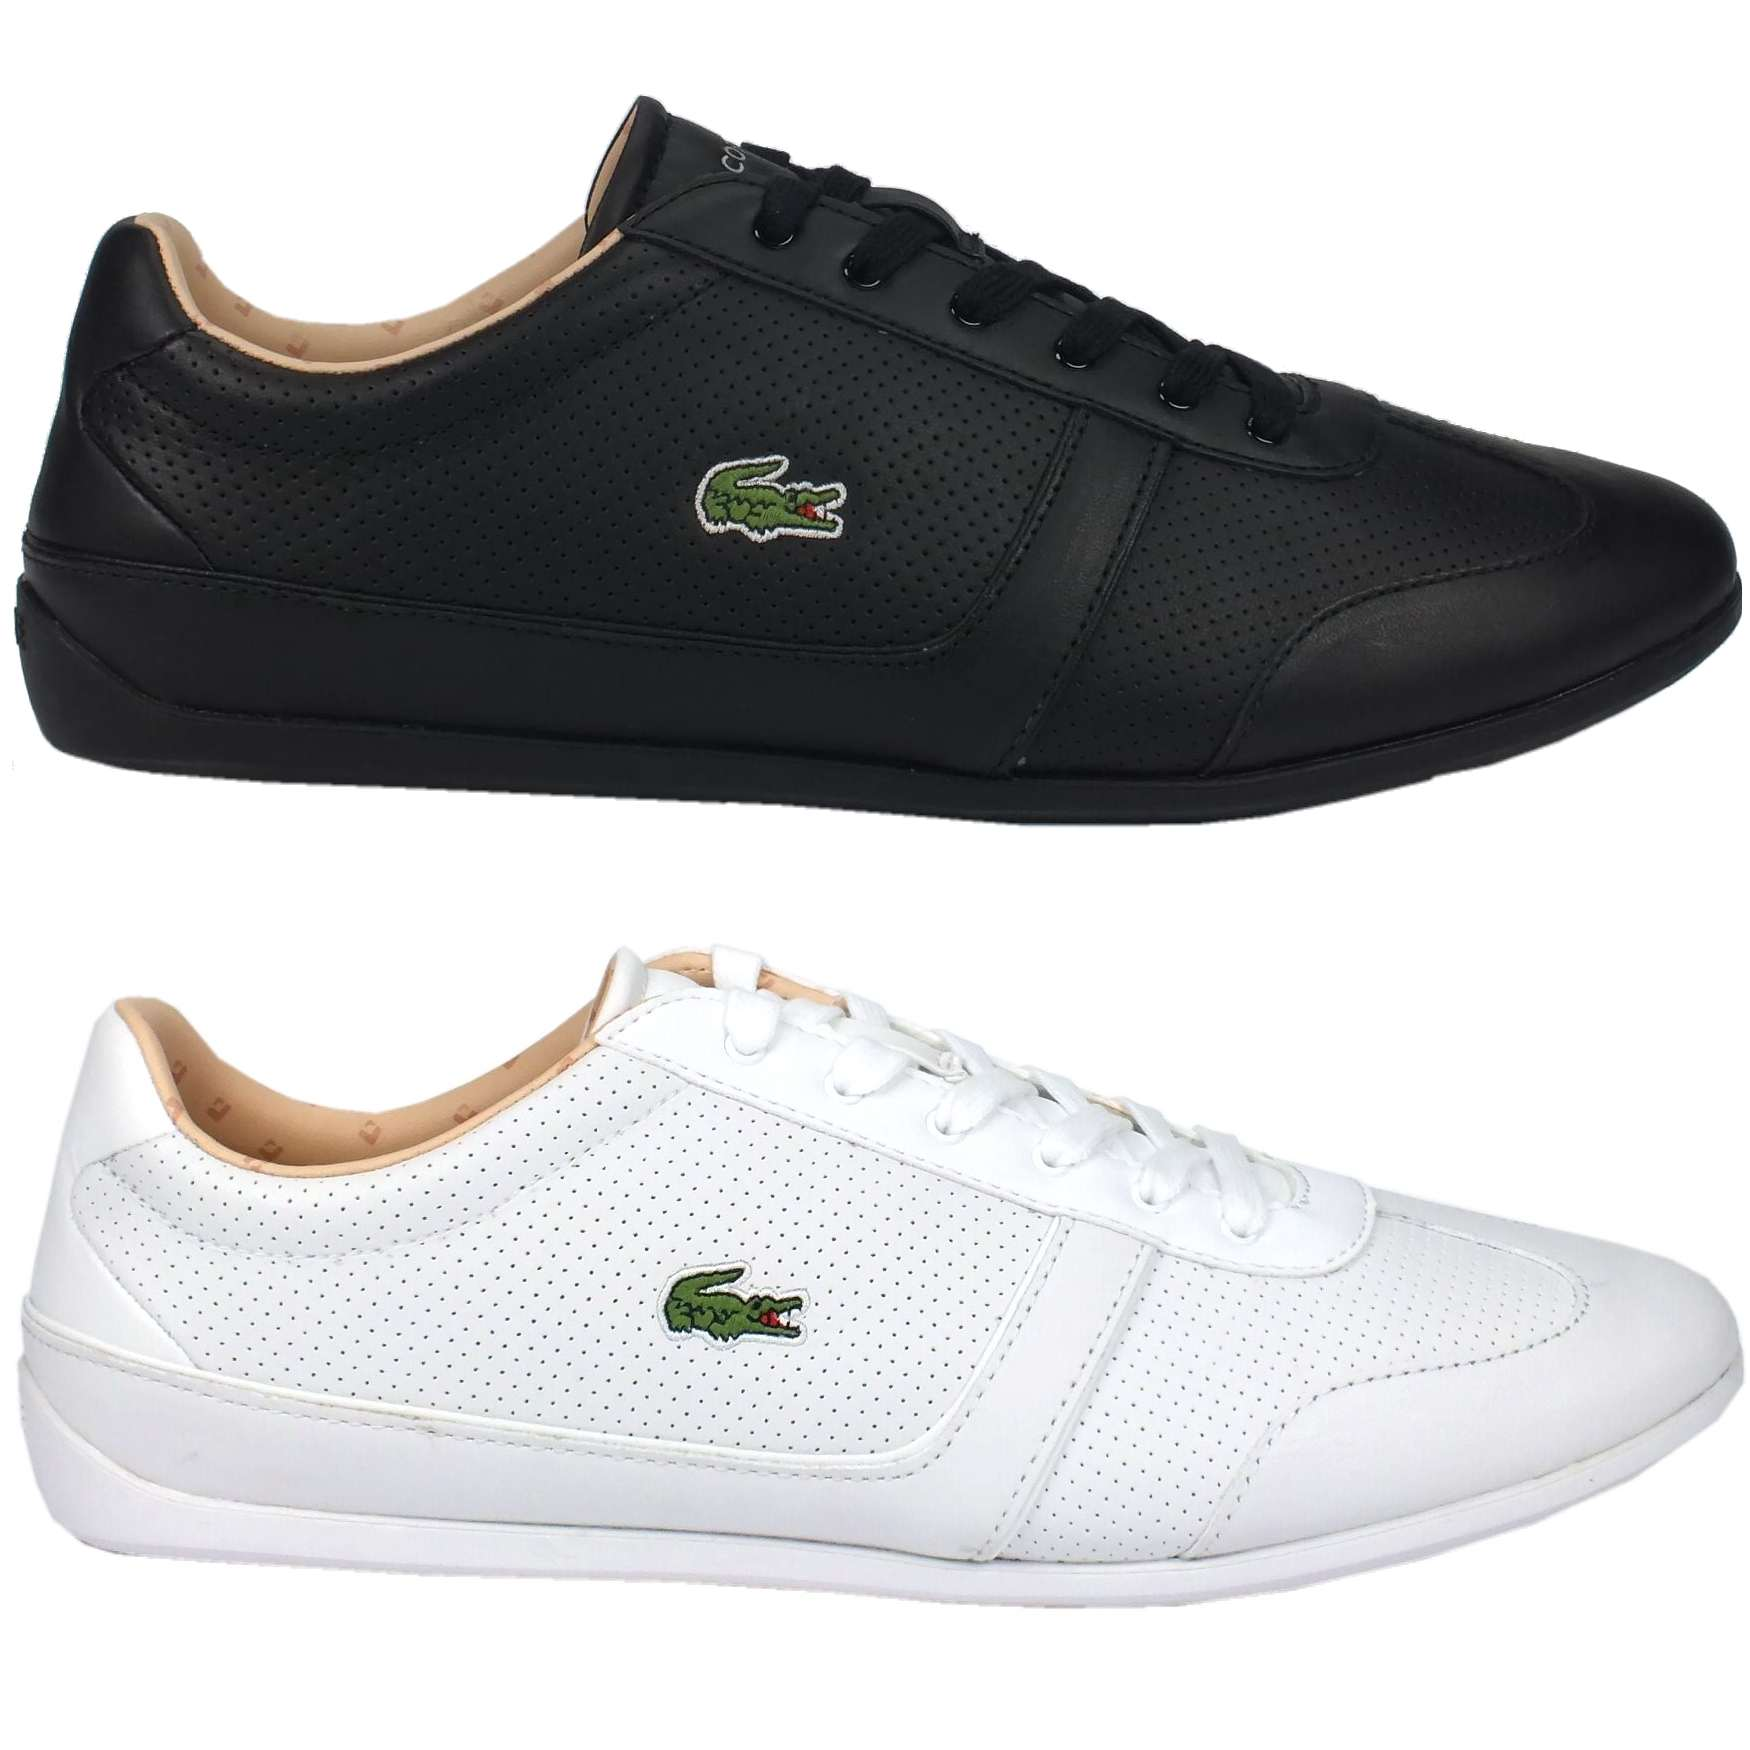 lacoste missano sport piq3 schuhe sneaker sportschuhe. Black Bedroom Furniture Sets. Home Design Ideas